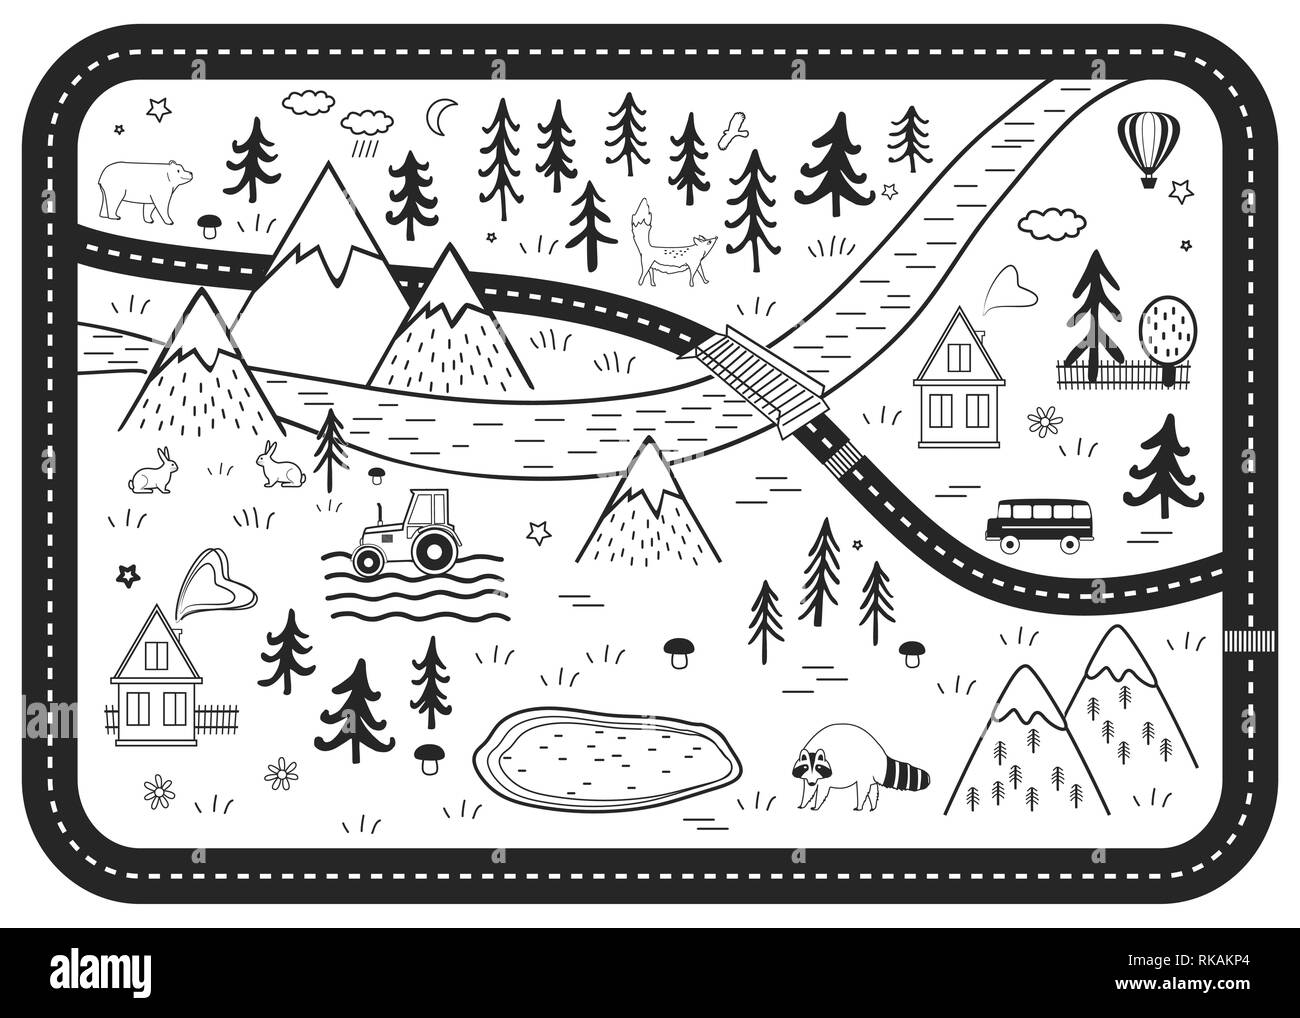 Black and White Kids Road Play Mat. Vector River, Mountains and Woods Adventure Map with Houses, Wood, Field, and Animals. Scandinavian Style Art. - Stock Vector